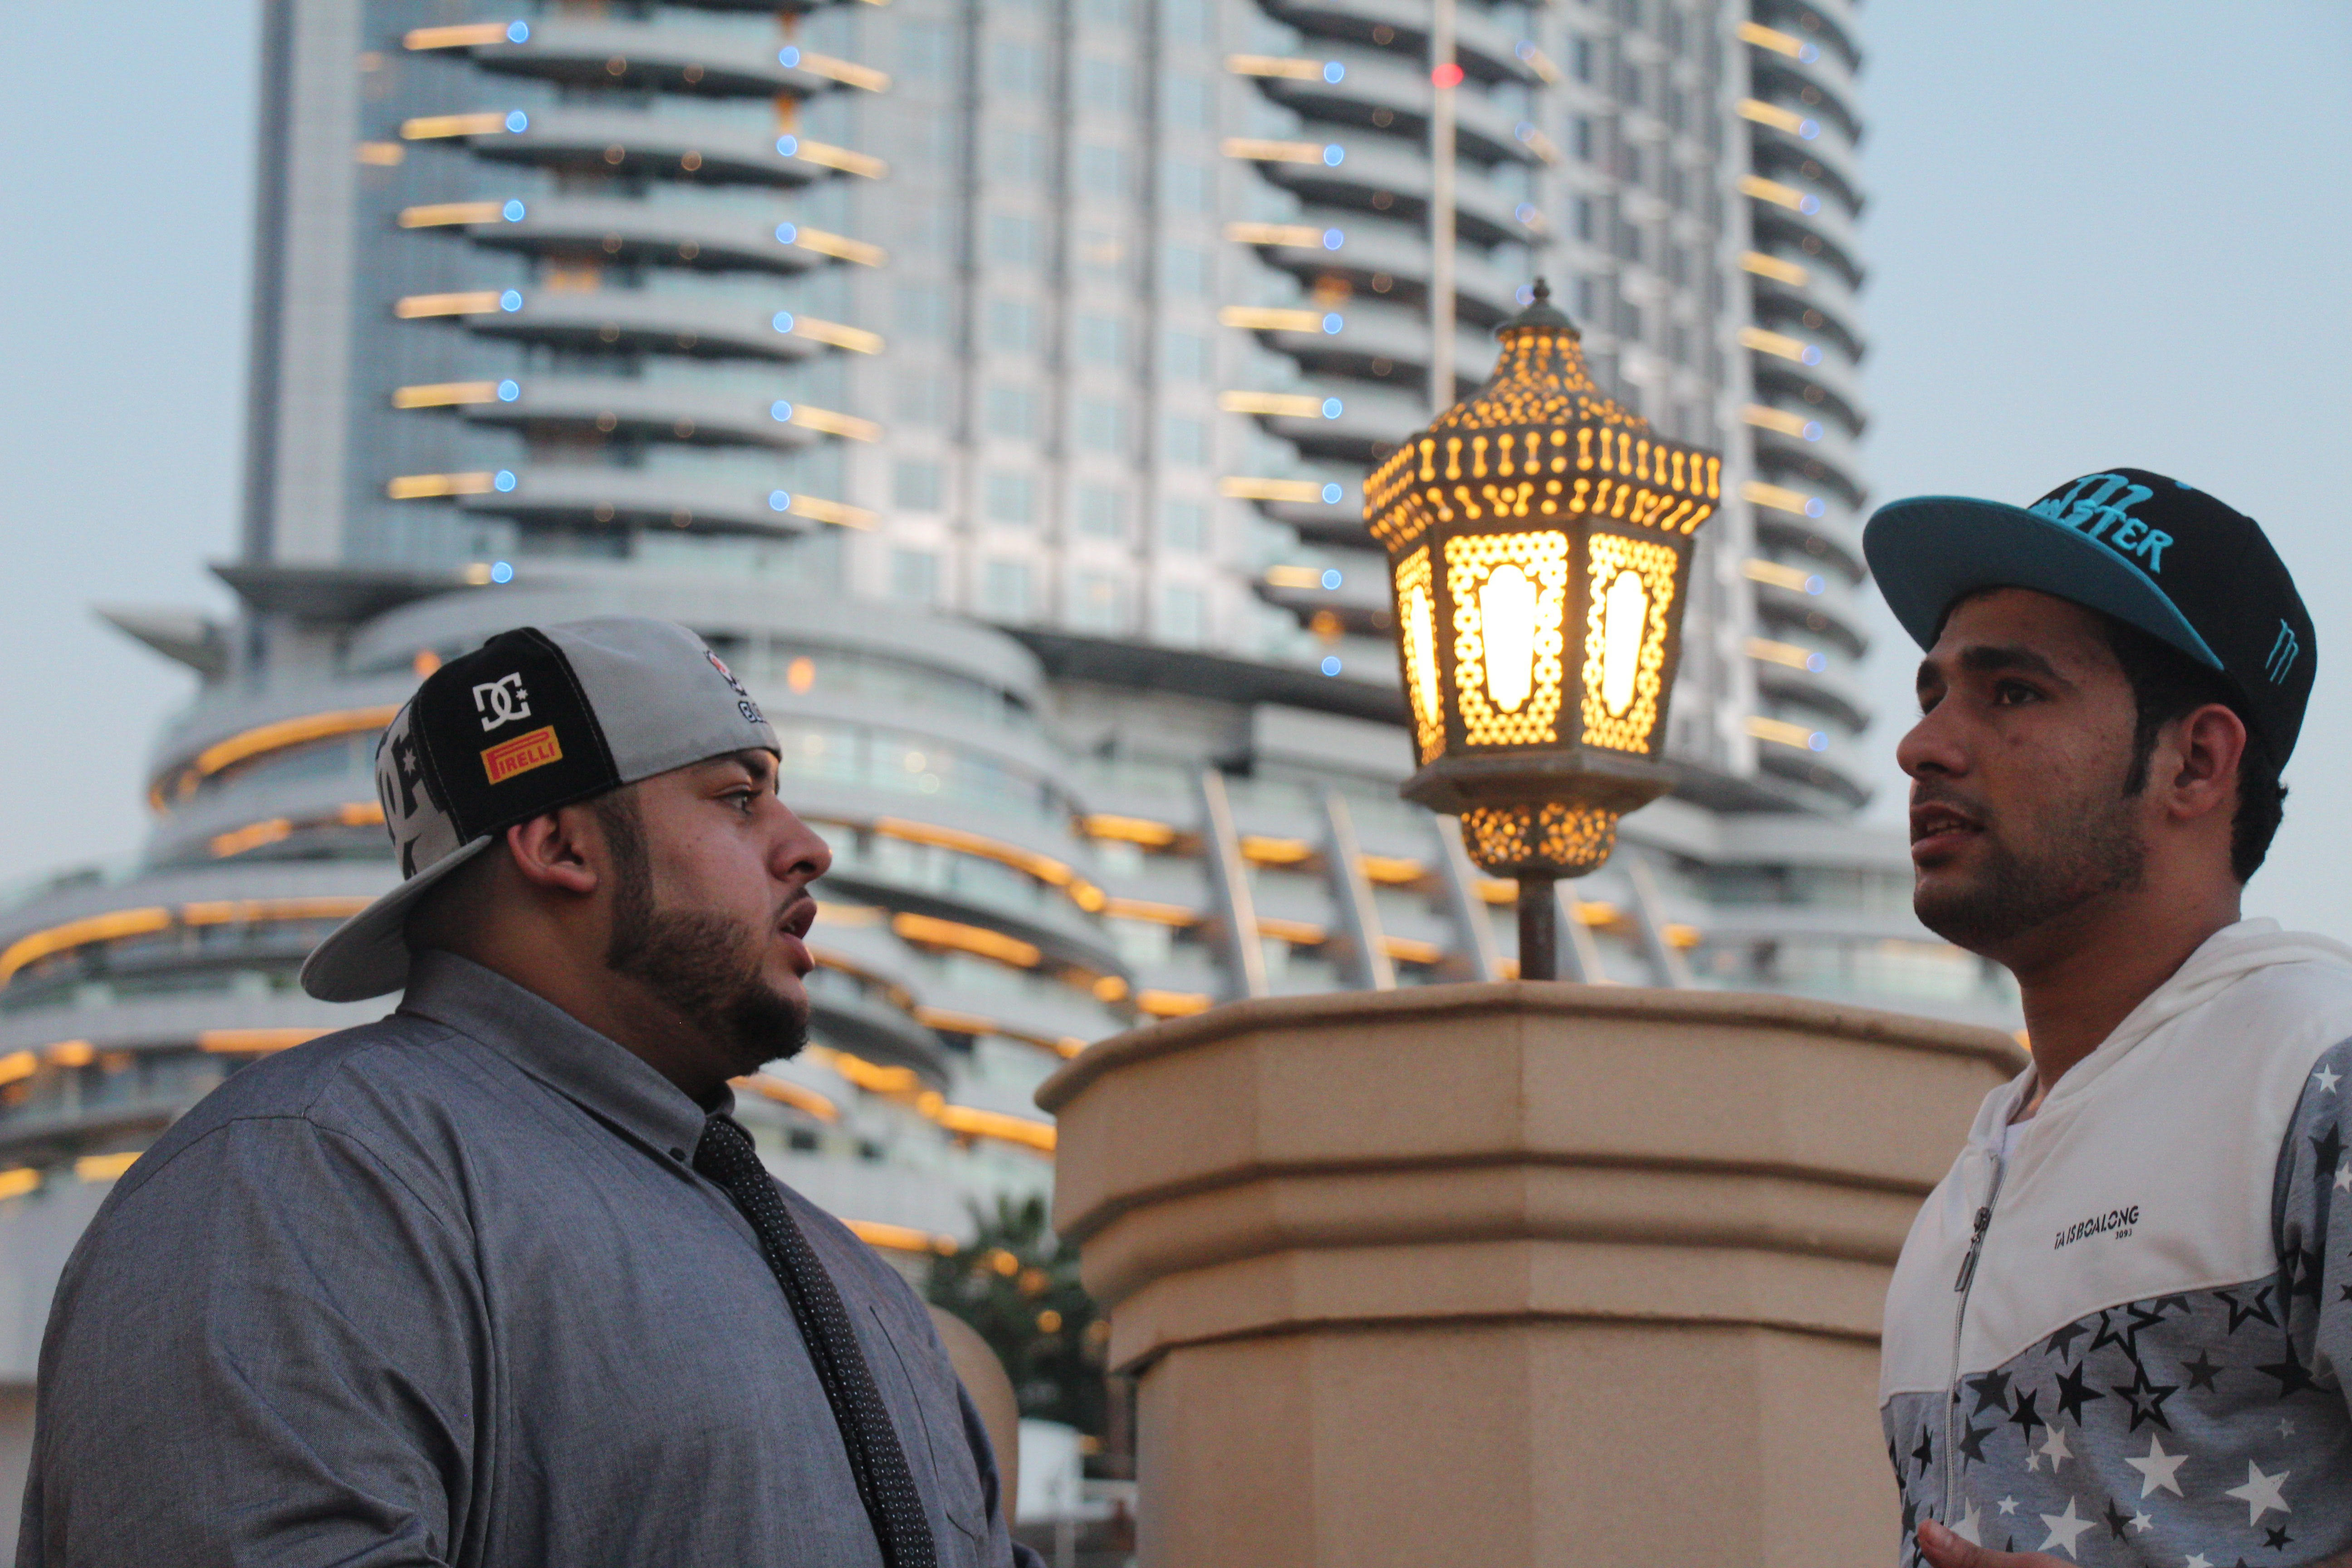 Young Omani rapper set to release new music video